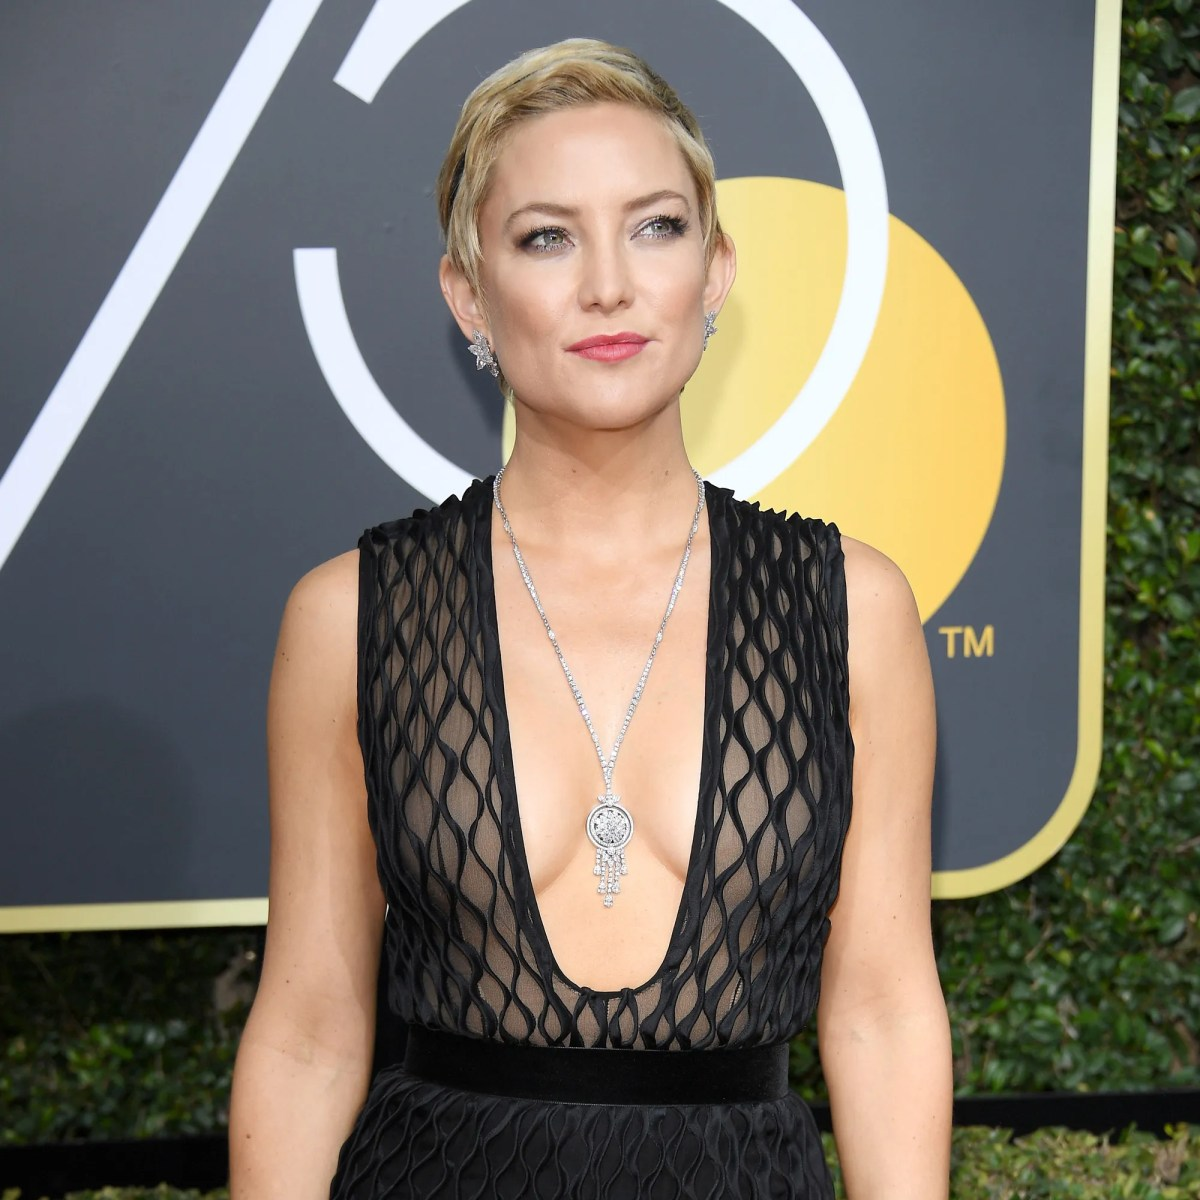 Kate Hudson Opens Up About Her Estranged Father Relationship With Siblings